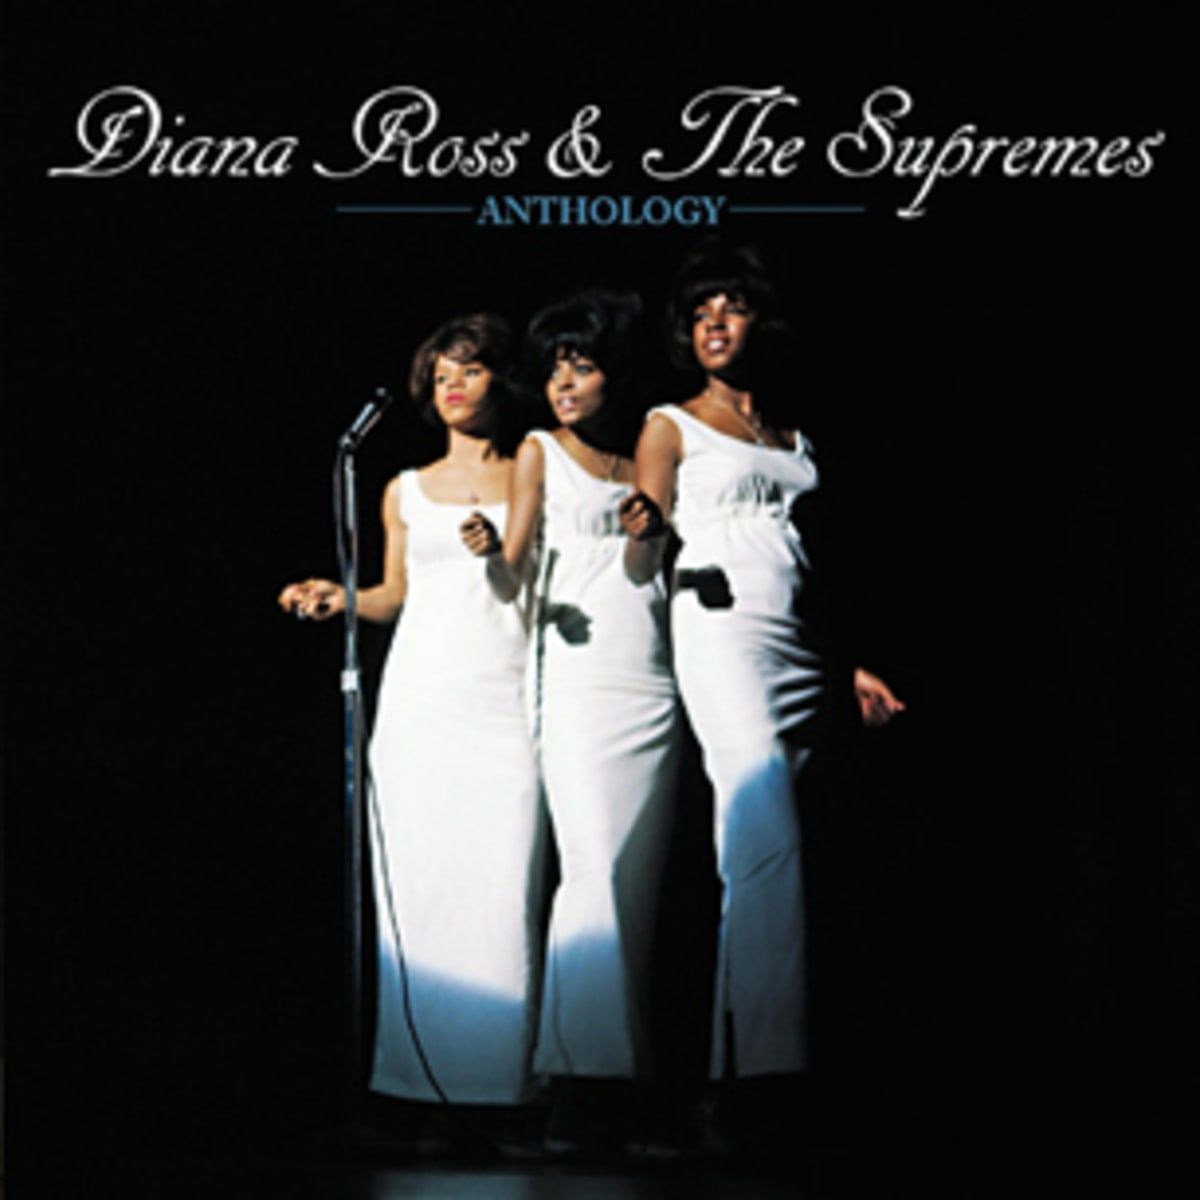 Pin By No Sleep On Vinyl To Get Diana Ross Diana Ross Supremes Great Albums